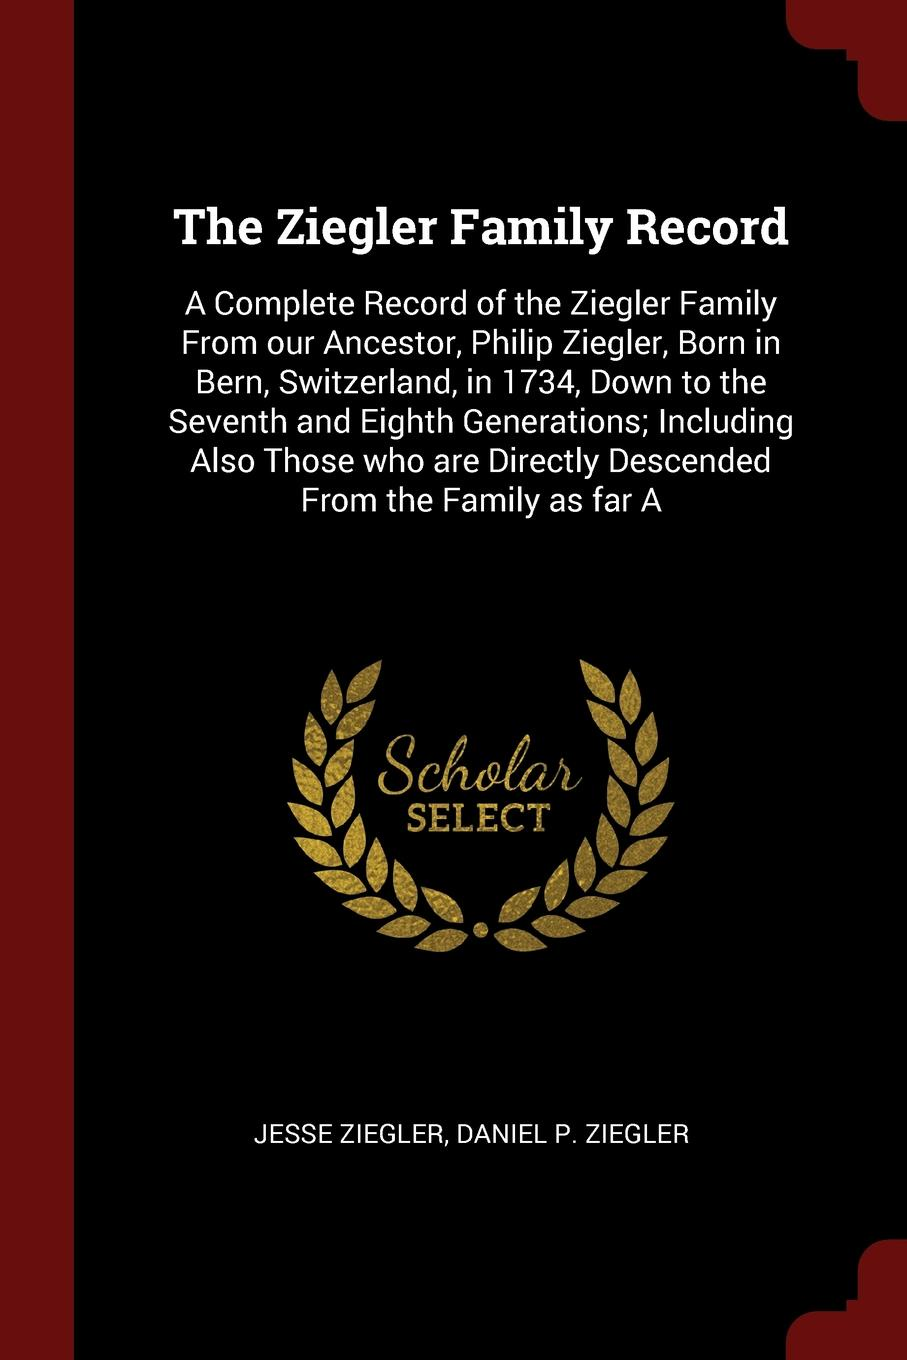 Jesse Ziegler, Daniel P. Ziegler The Ziegler Family Record. A Complete Record of the Ziegler Family From our Ancestor, Philip Ziegler, Born in Bern, Switzerland, in 1734, Down to the Seventh and Eighth Generations; Including Also Those who are Directly Descended From the Family a... эдвард бульвер литтон the caxtons a family picture volume 03